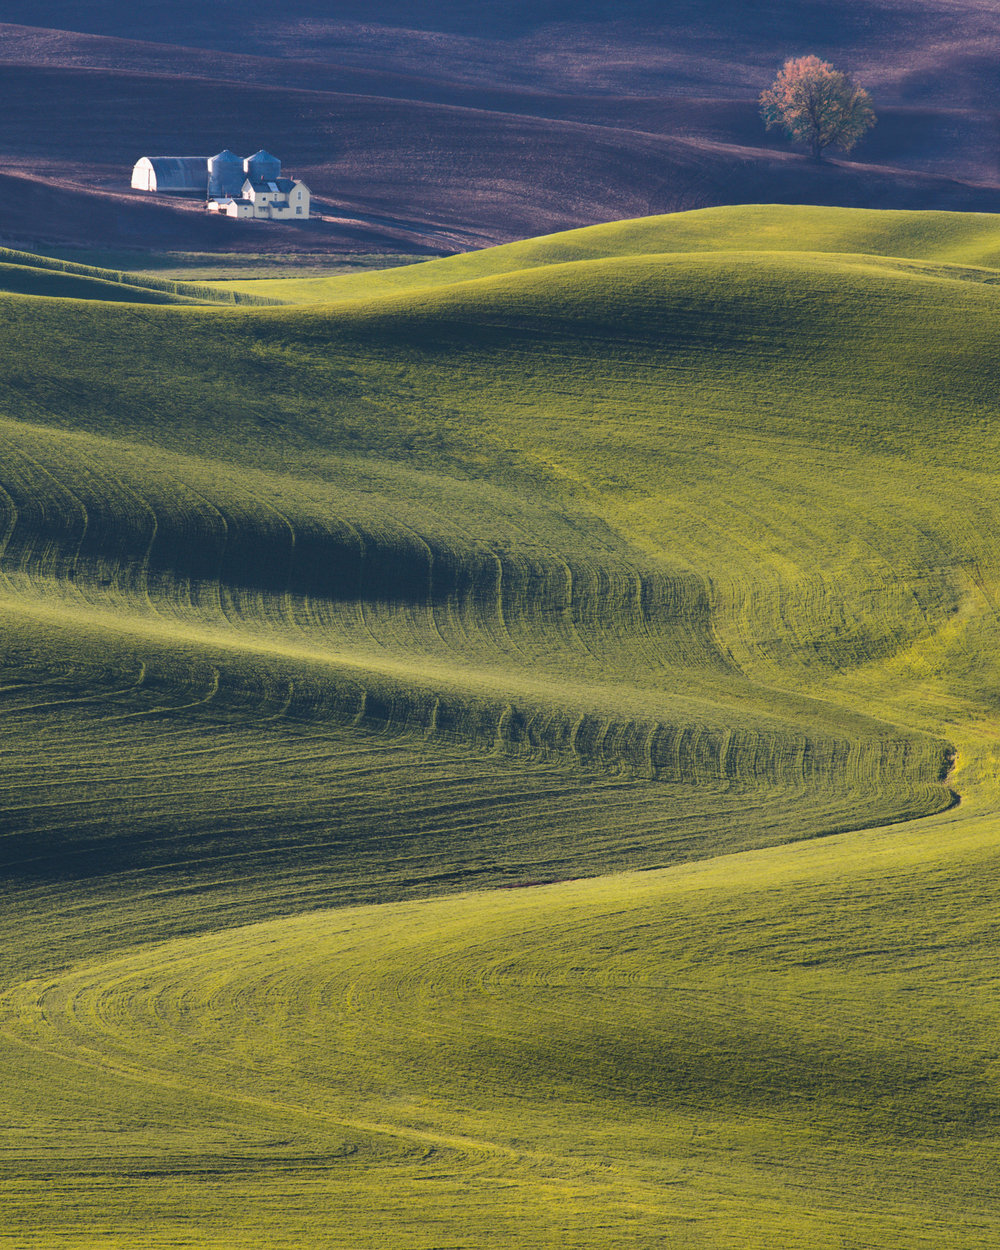 Sunrise in the Palouse